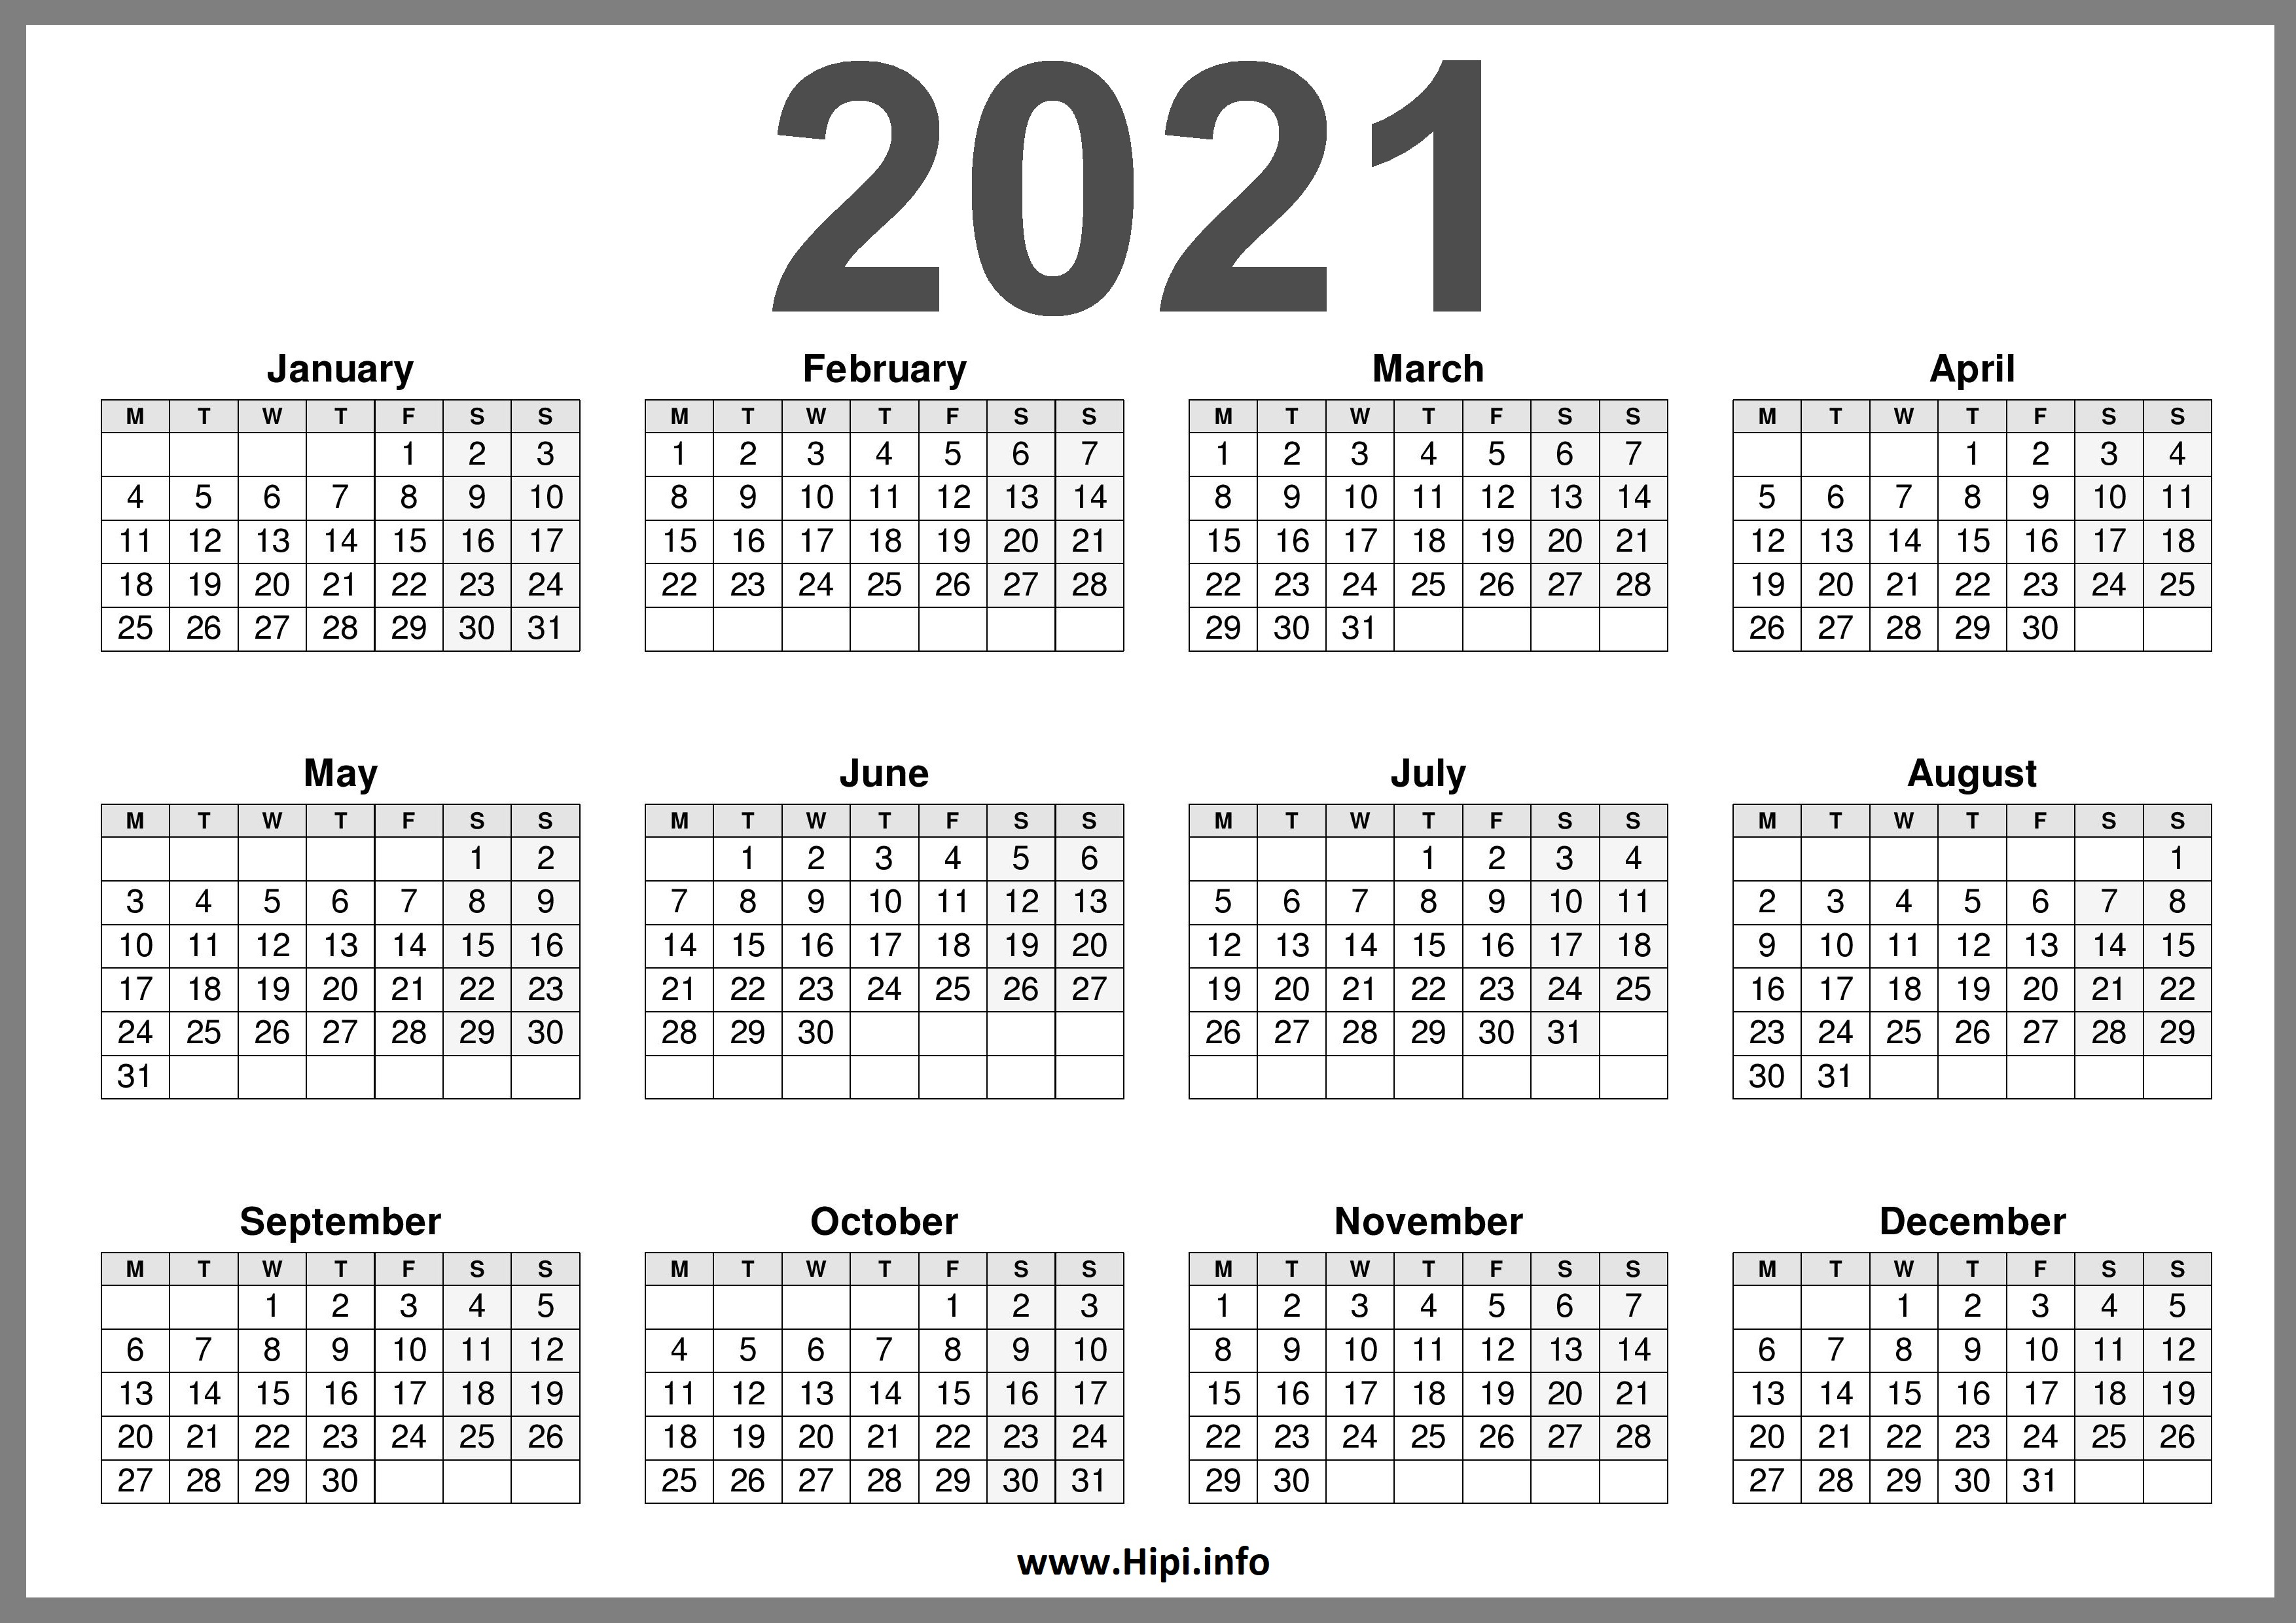 2021 Printable Calendar (UK) United Kingdom - Hipi.info ...